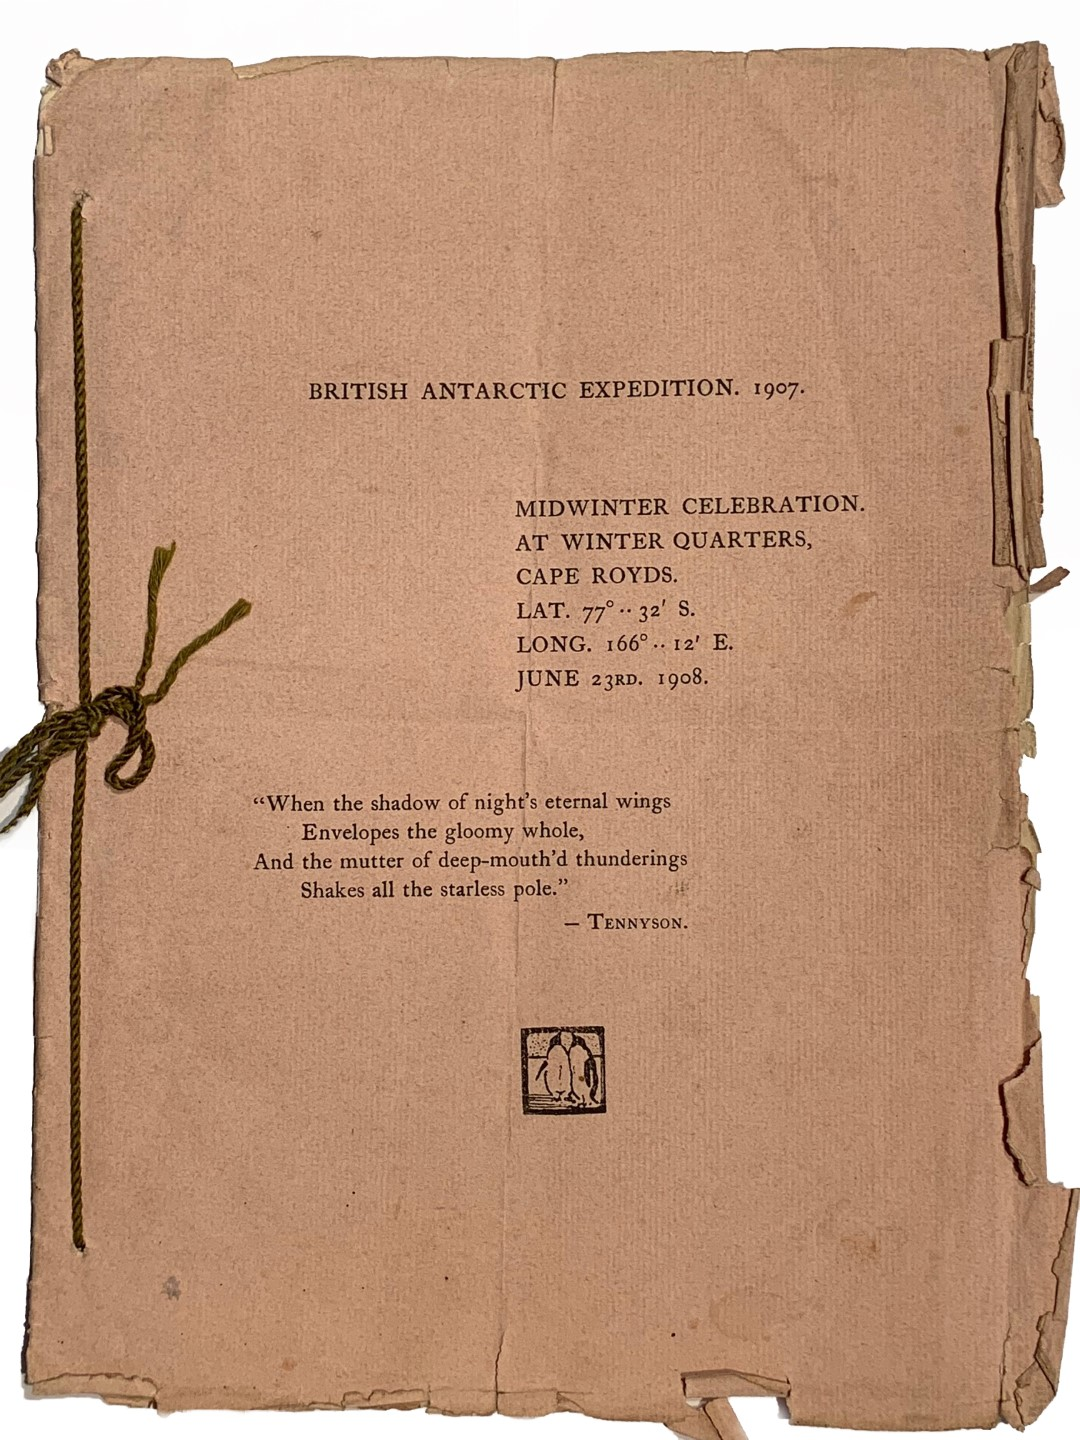 Lot 1 - The British Antarctic Expedition 1907-1909 led by Ernest Shackleton - June 23rd 1908. The